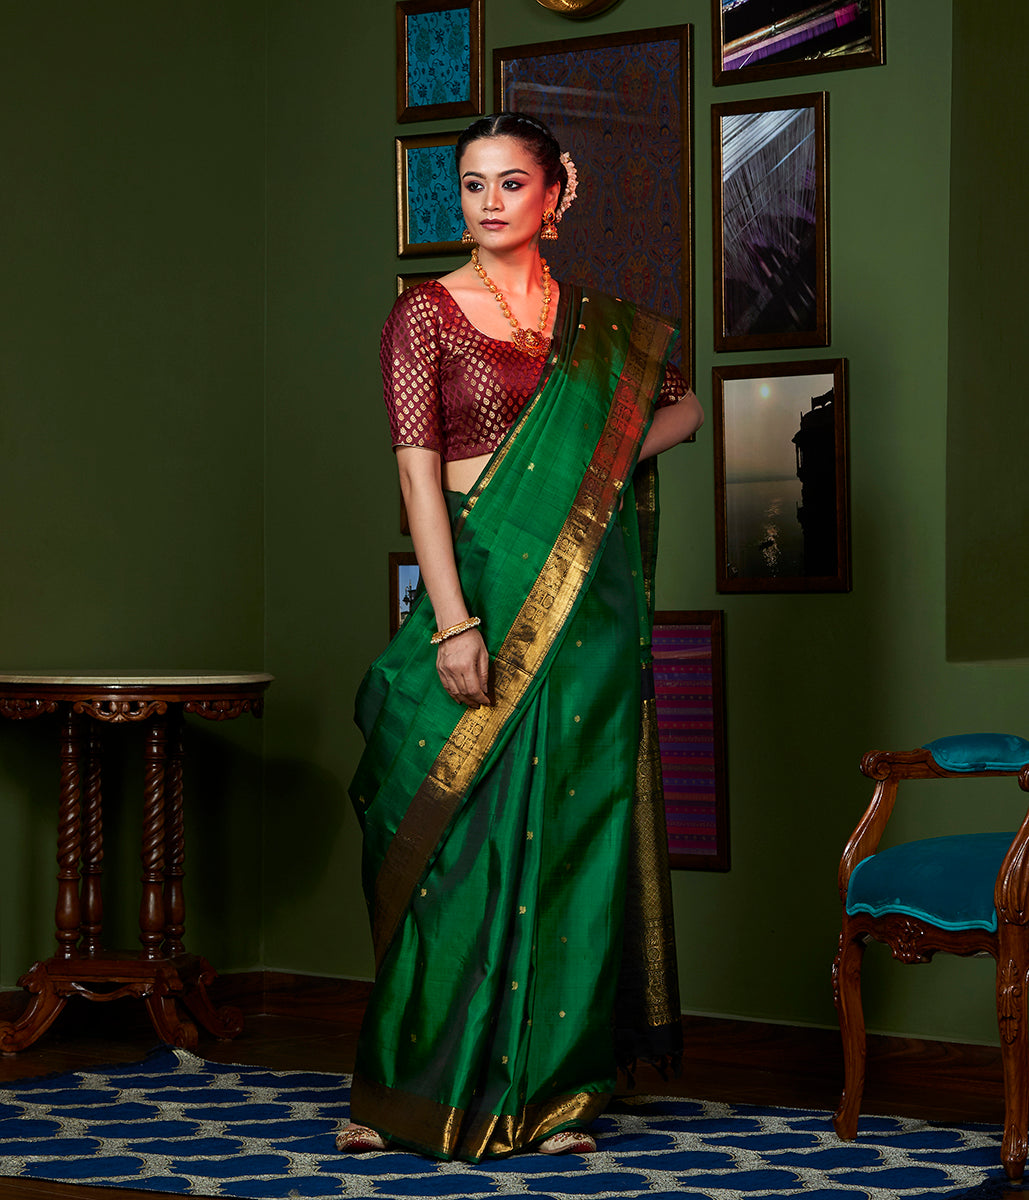 Handwoven emerald green kanjivaram silk saree with pure zari border